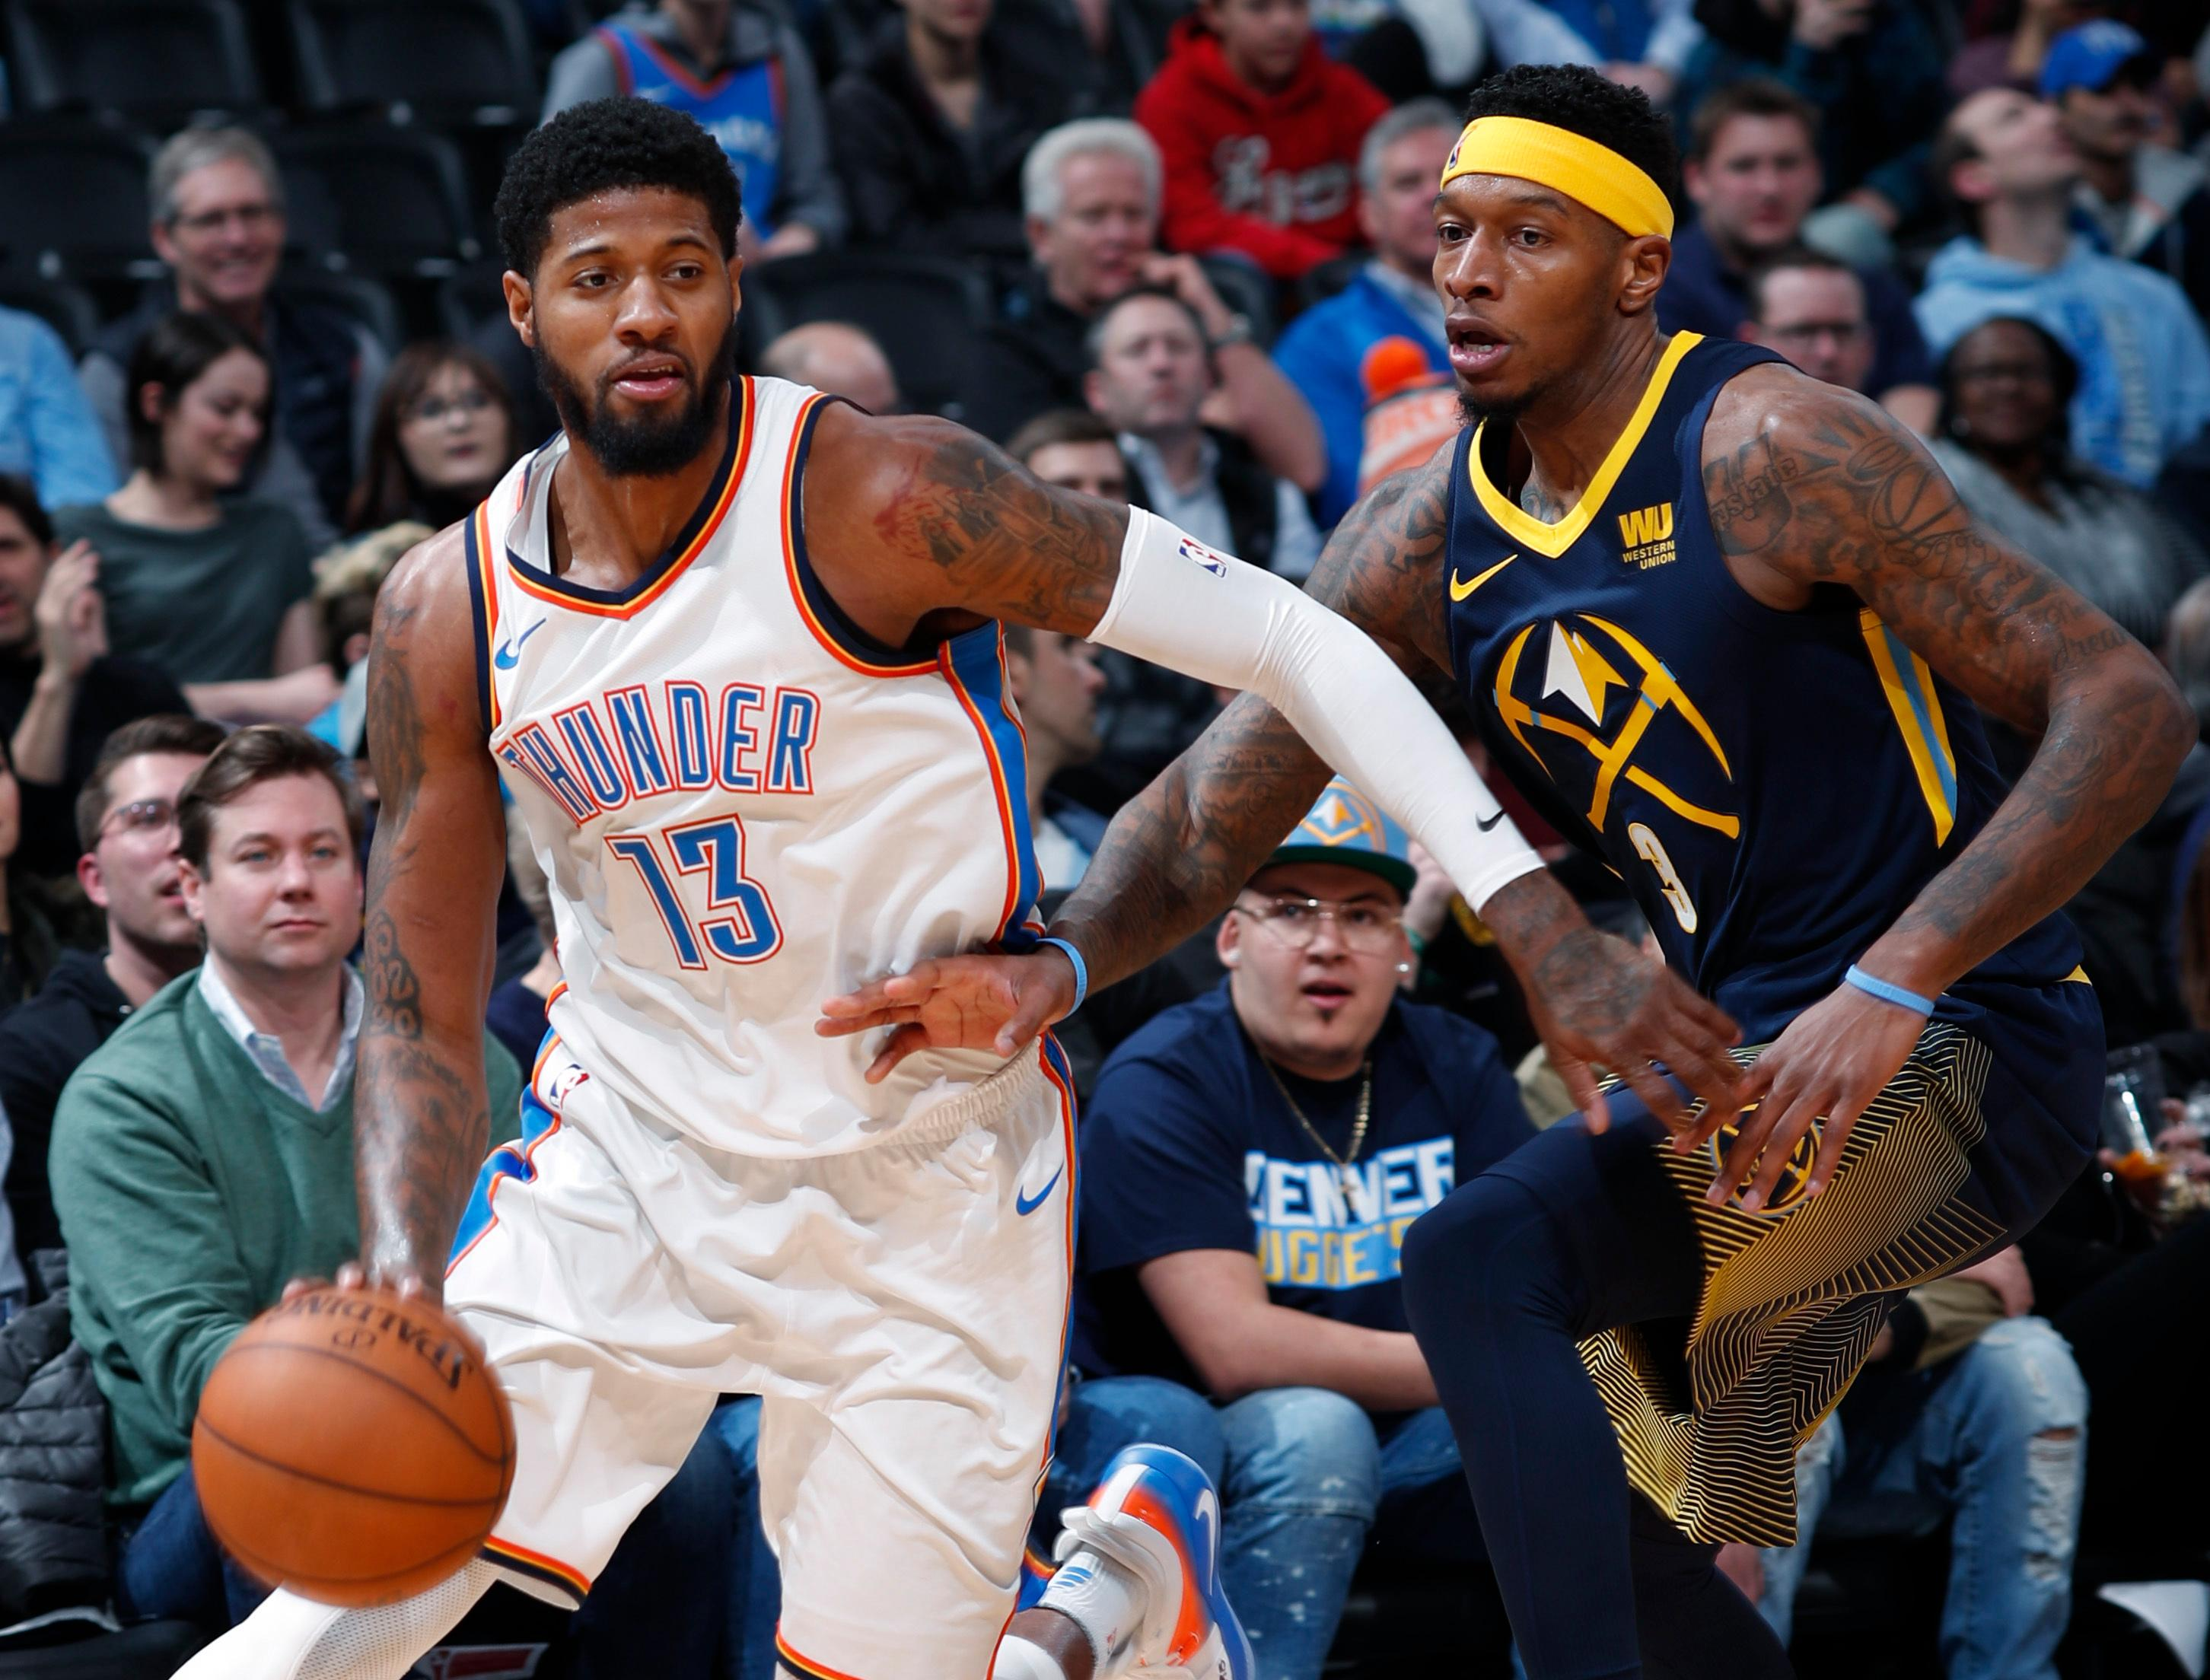 Oklahoma City Thunder forward Paul George, left, works against Denver Nuggets guard Torrey Craig during the first half of an NBA basketball game Thursday, Feb. 1, 2018, in Denver. (AP Photo/David Zalubowski)